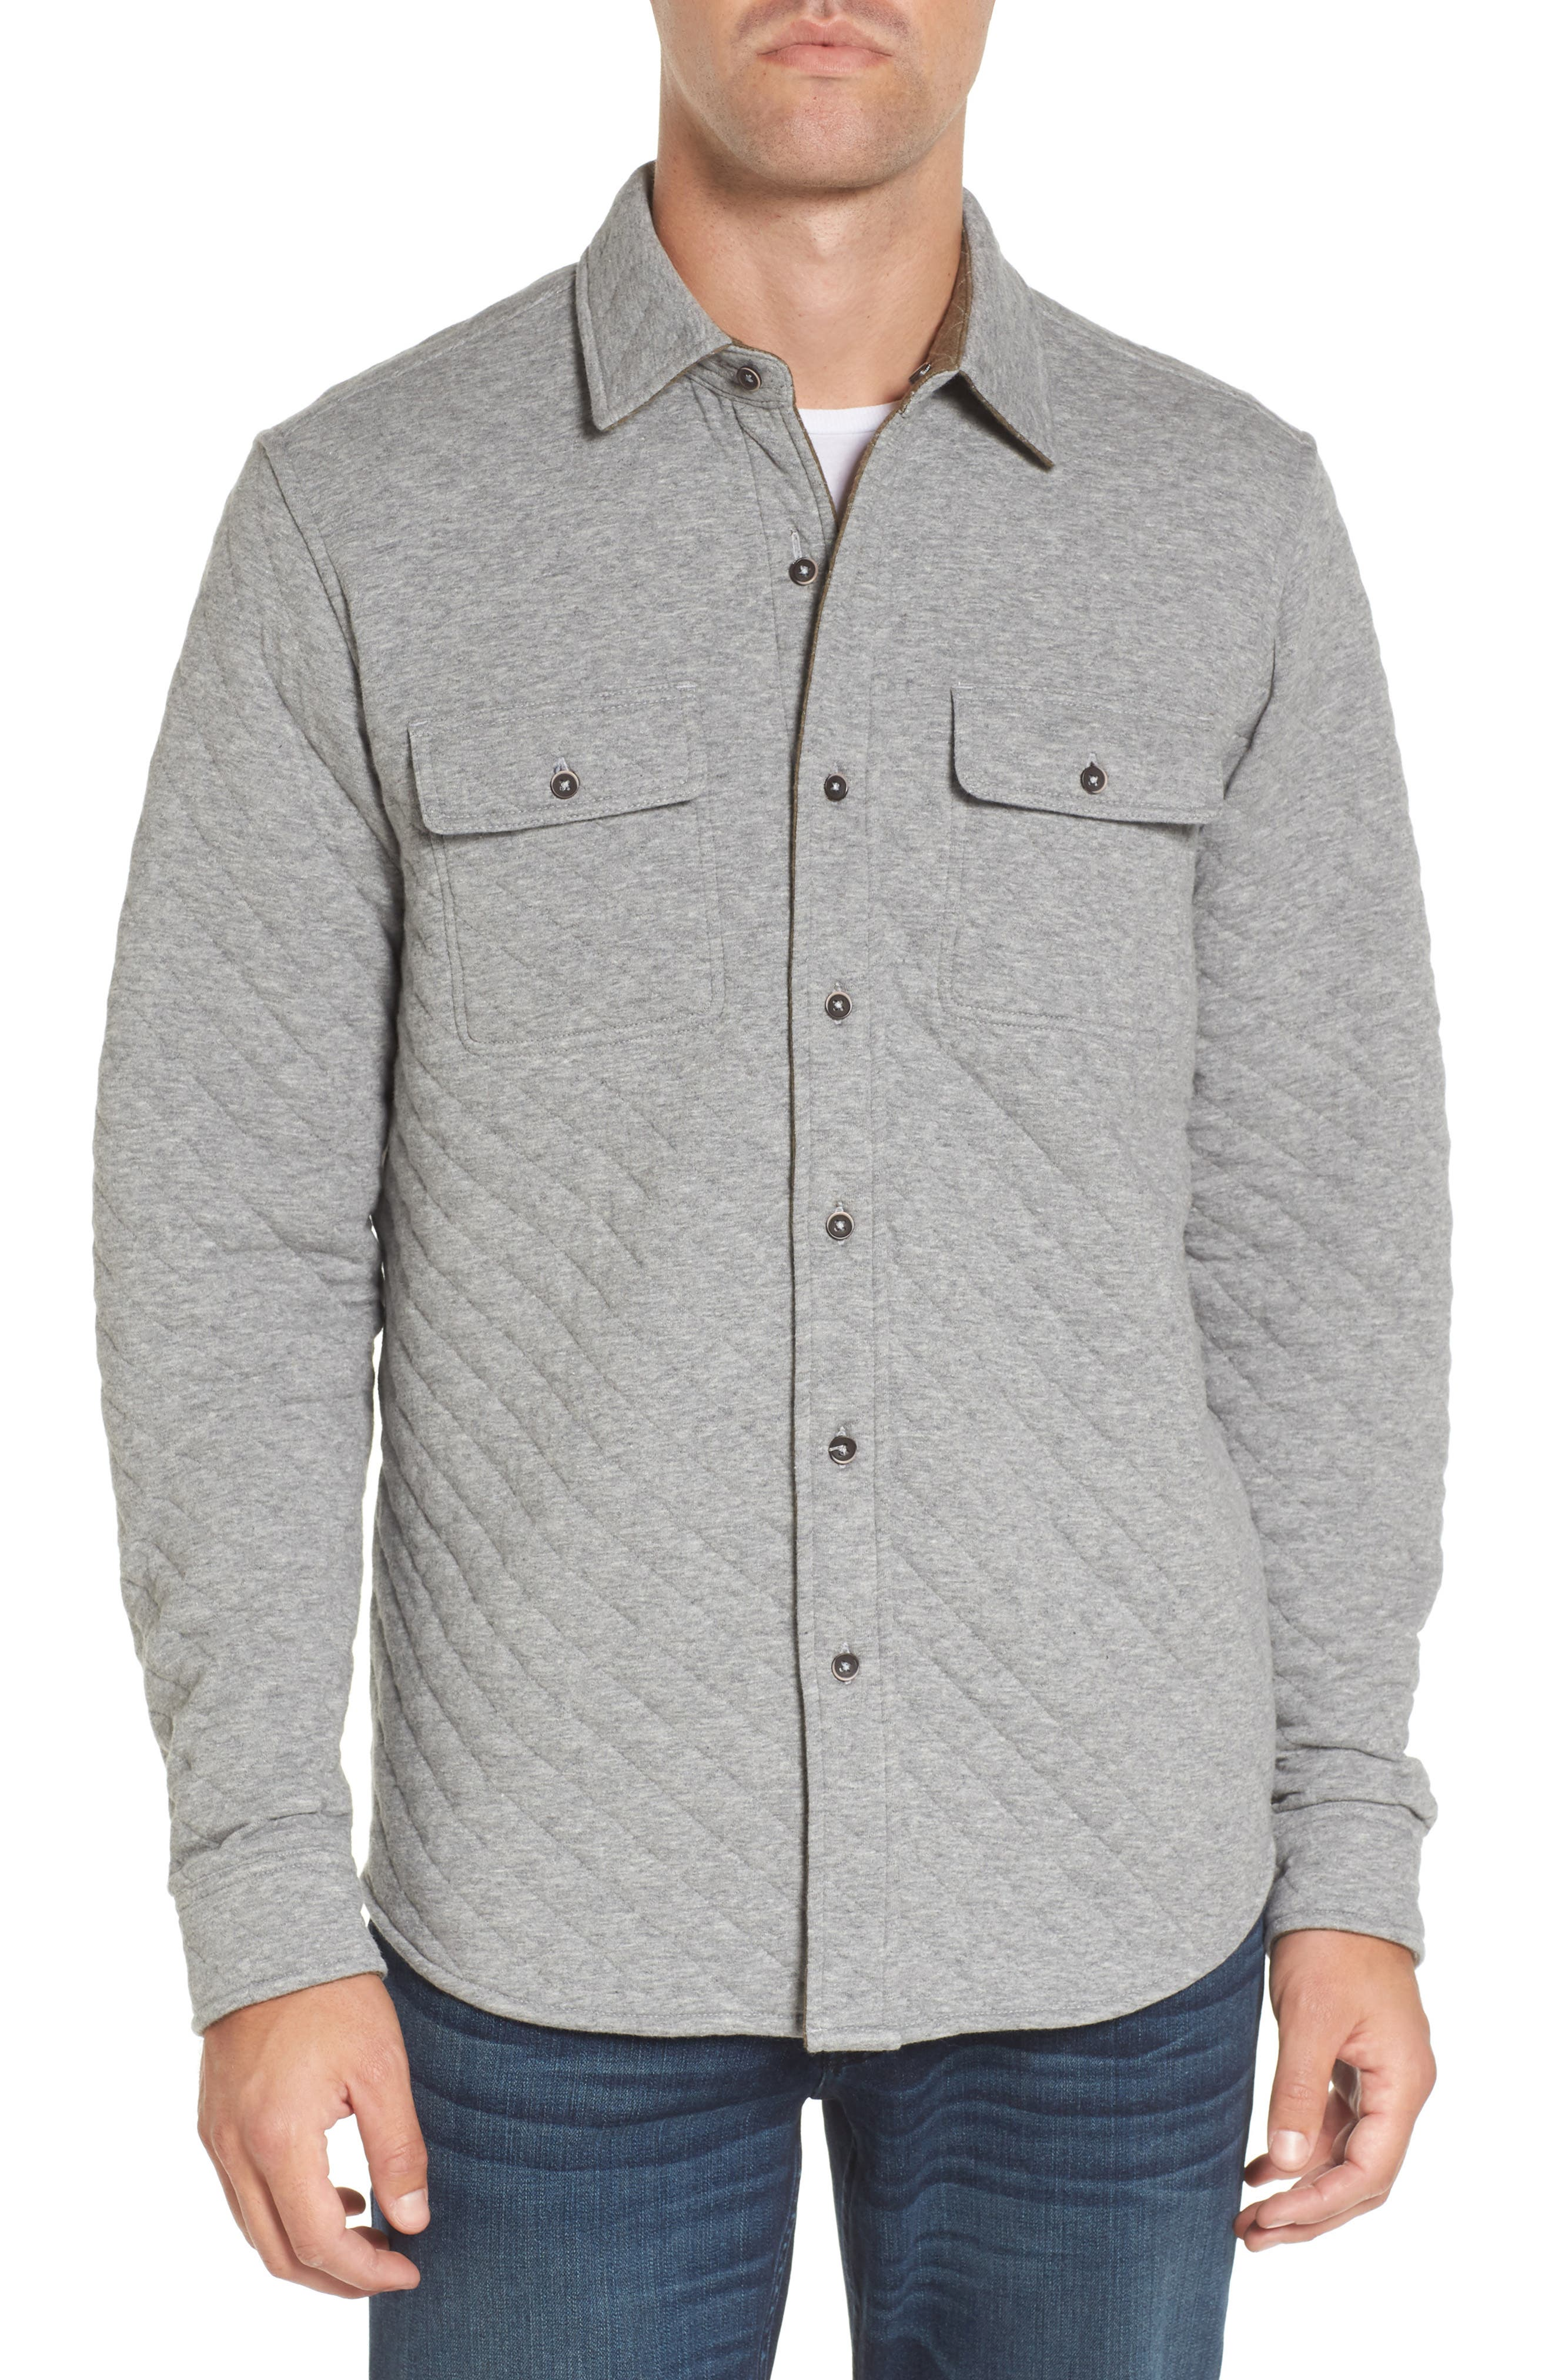 Reversible Double-Face Quilted Shirt,                             Main thumbnail 1, color,                             Med Grey Htr/ Army Htr Quilted